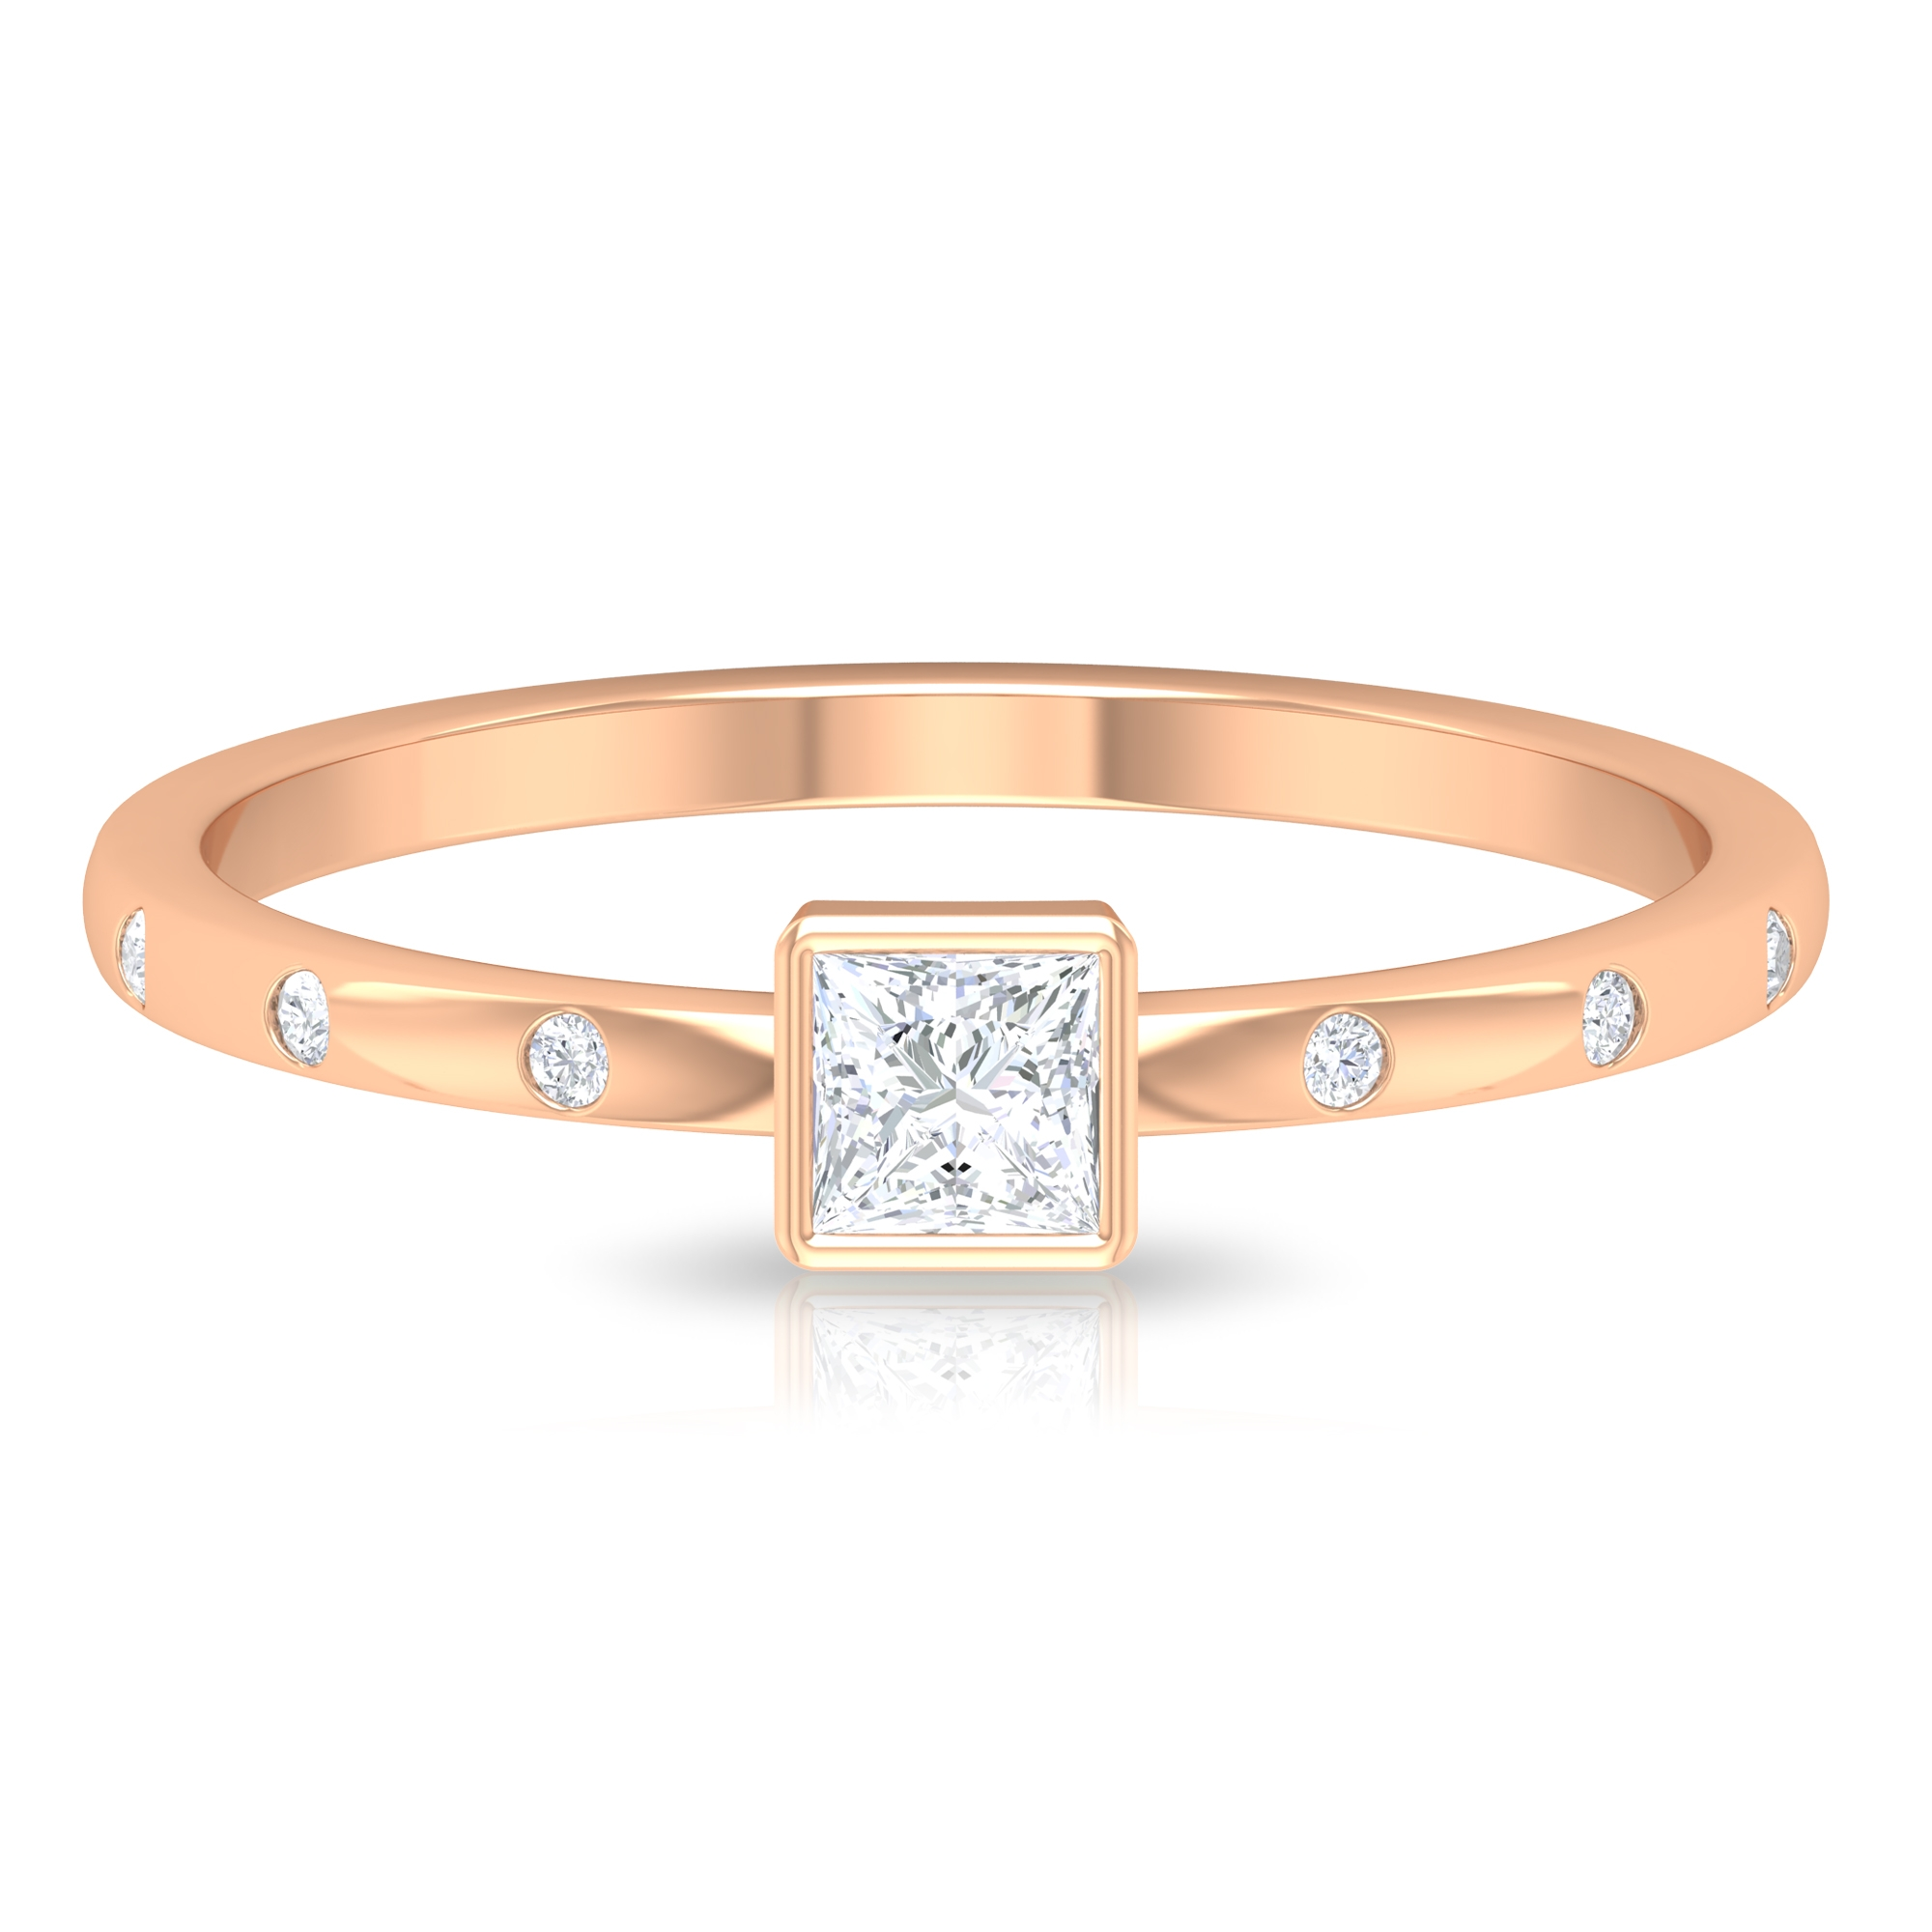 1/4 CT Bezel Set Princess Cut Diamond Solitaire Ring with Sleek Accent Side Stones